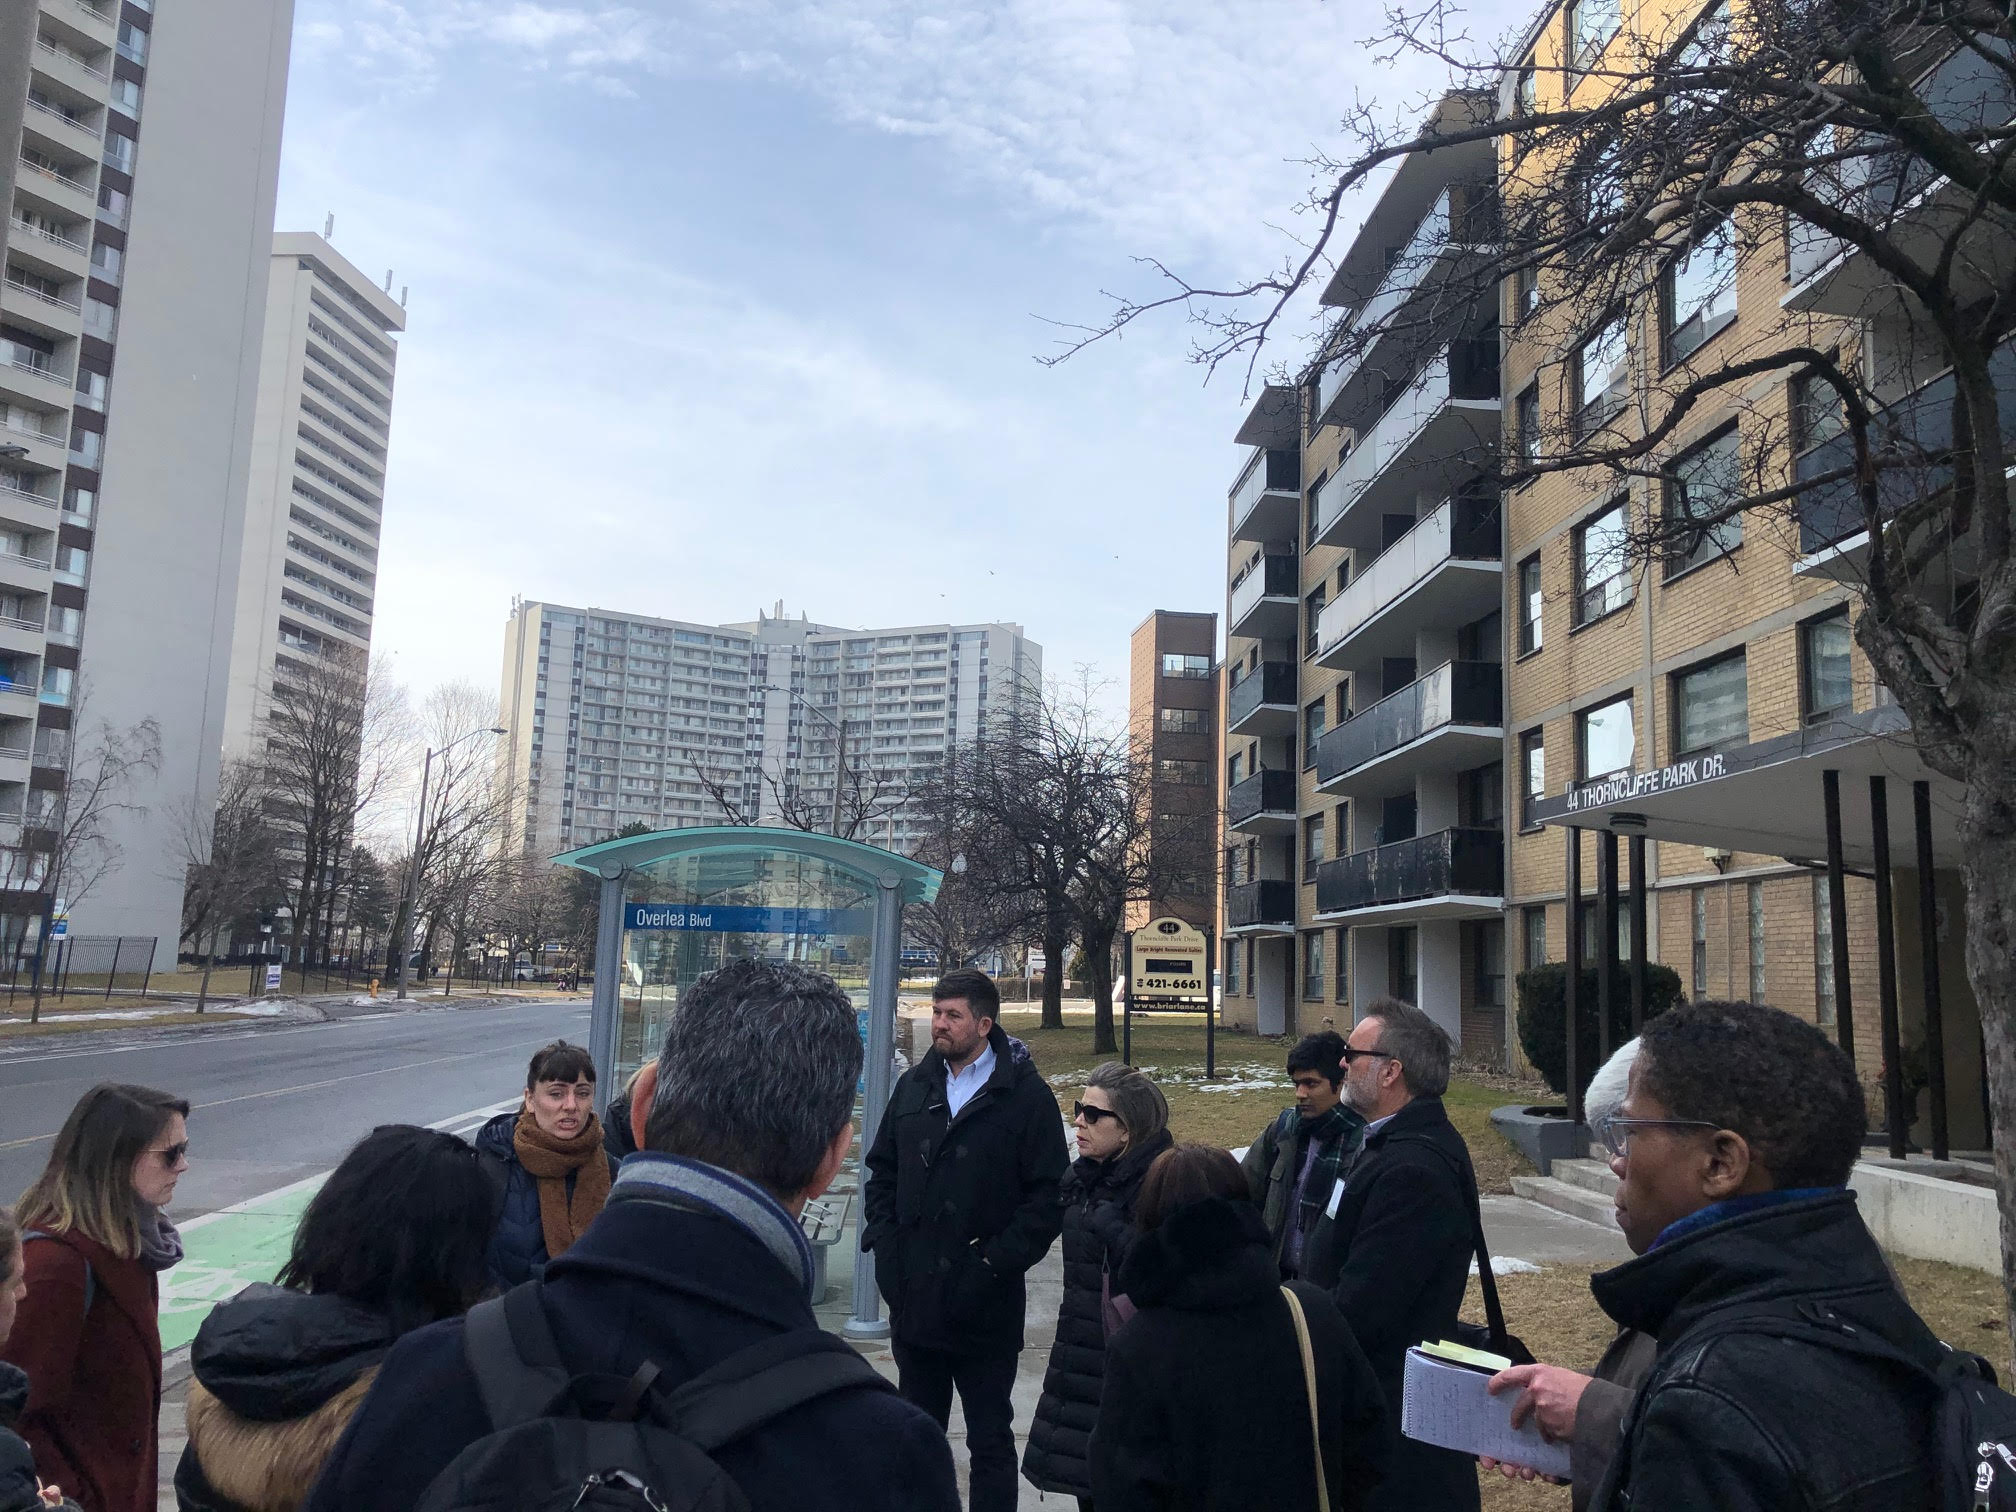 A group touring a tower neighbourhood in Toronto